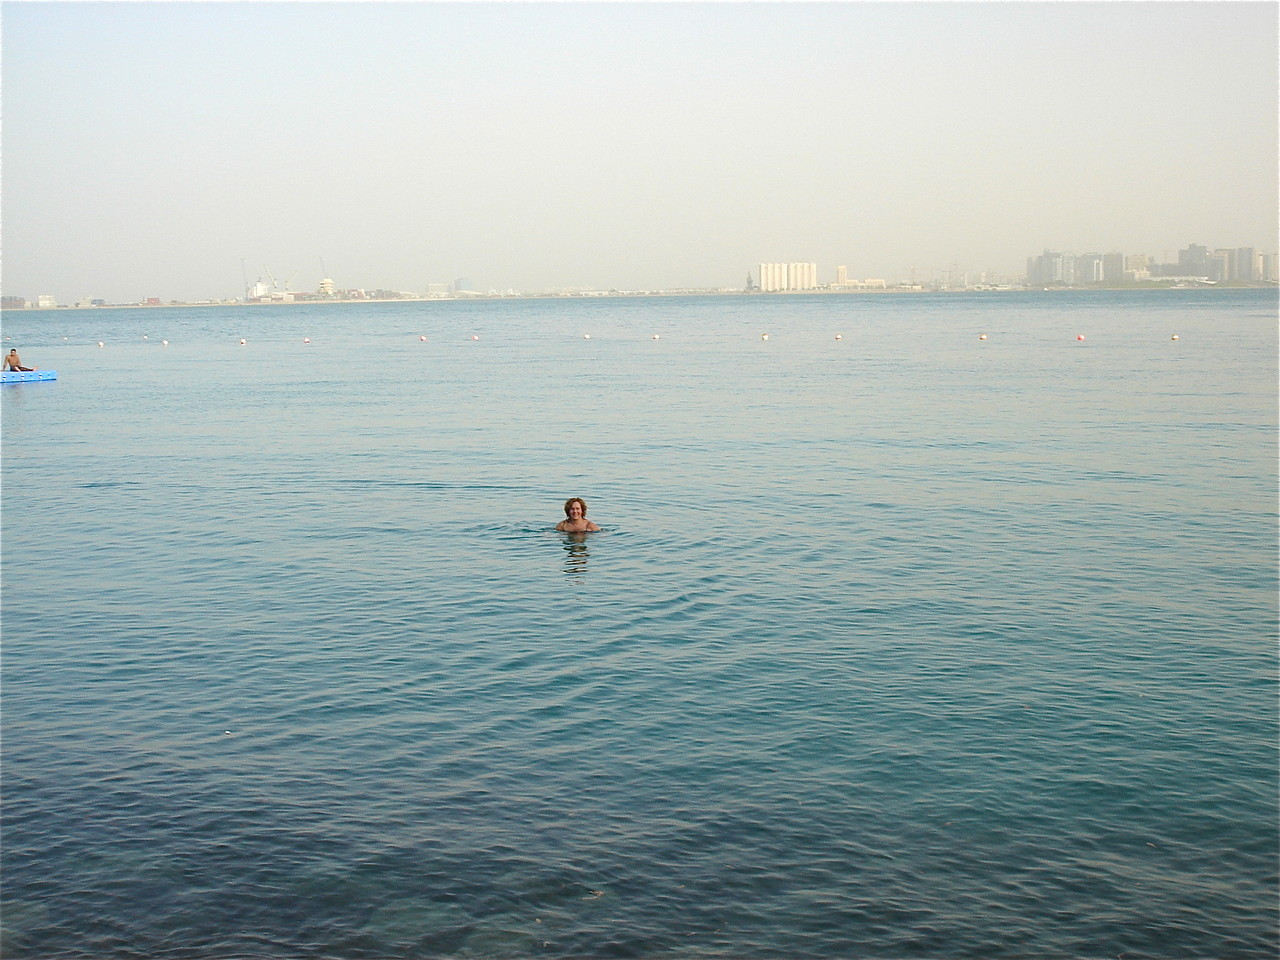 Lorraine swimming in the Persian Gulf, 29 degrees C, very salty